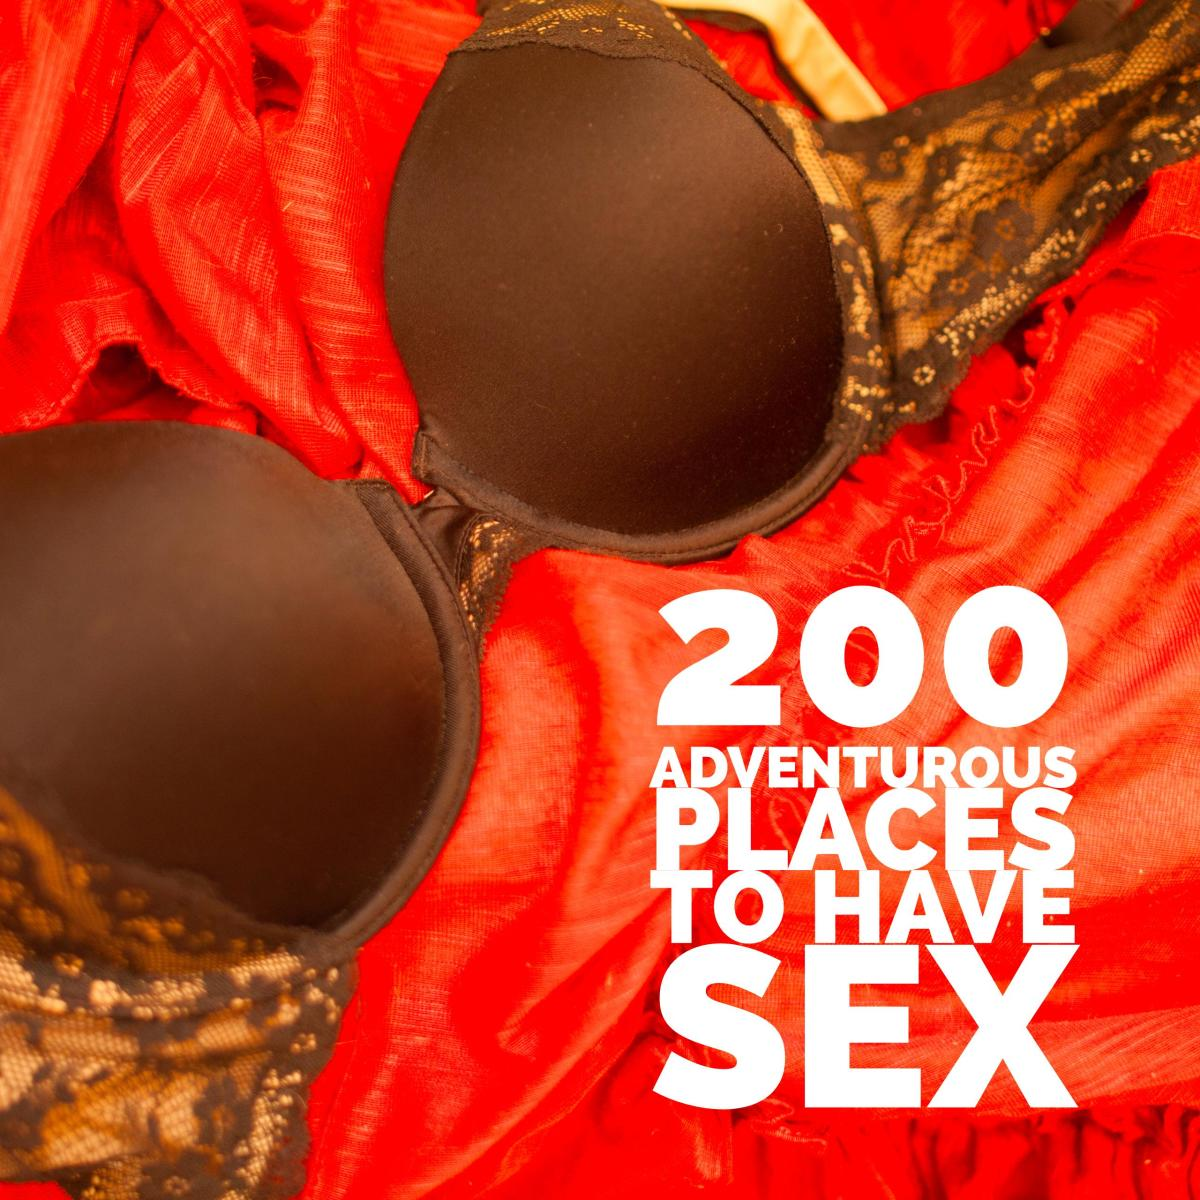 150-best-places-ever-to-have-sex